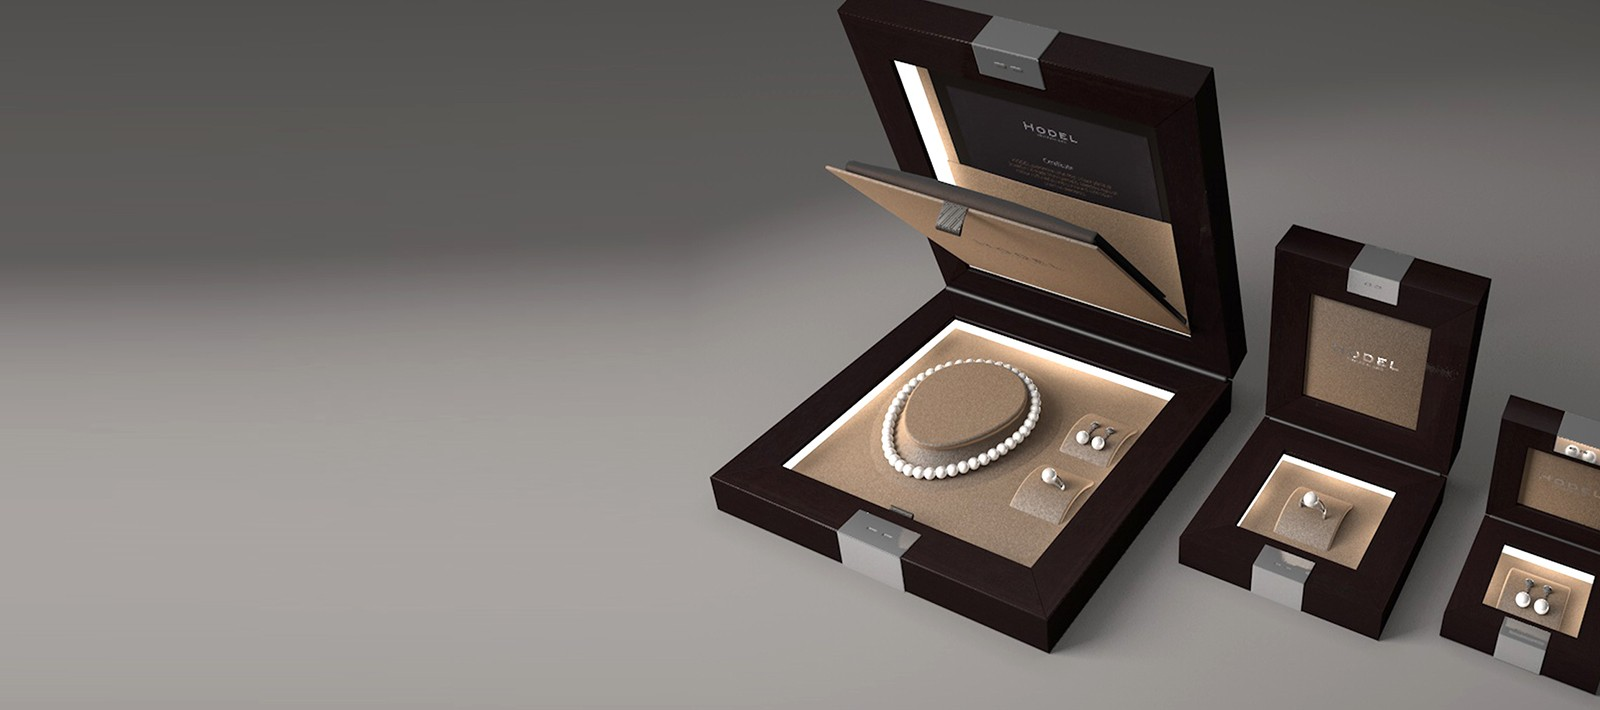 Hodel jewellery packaging design